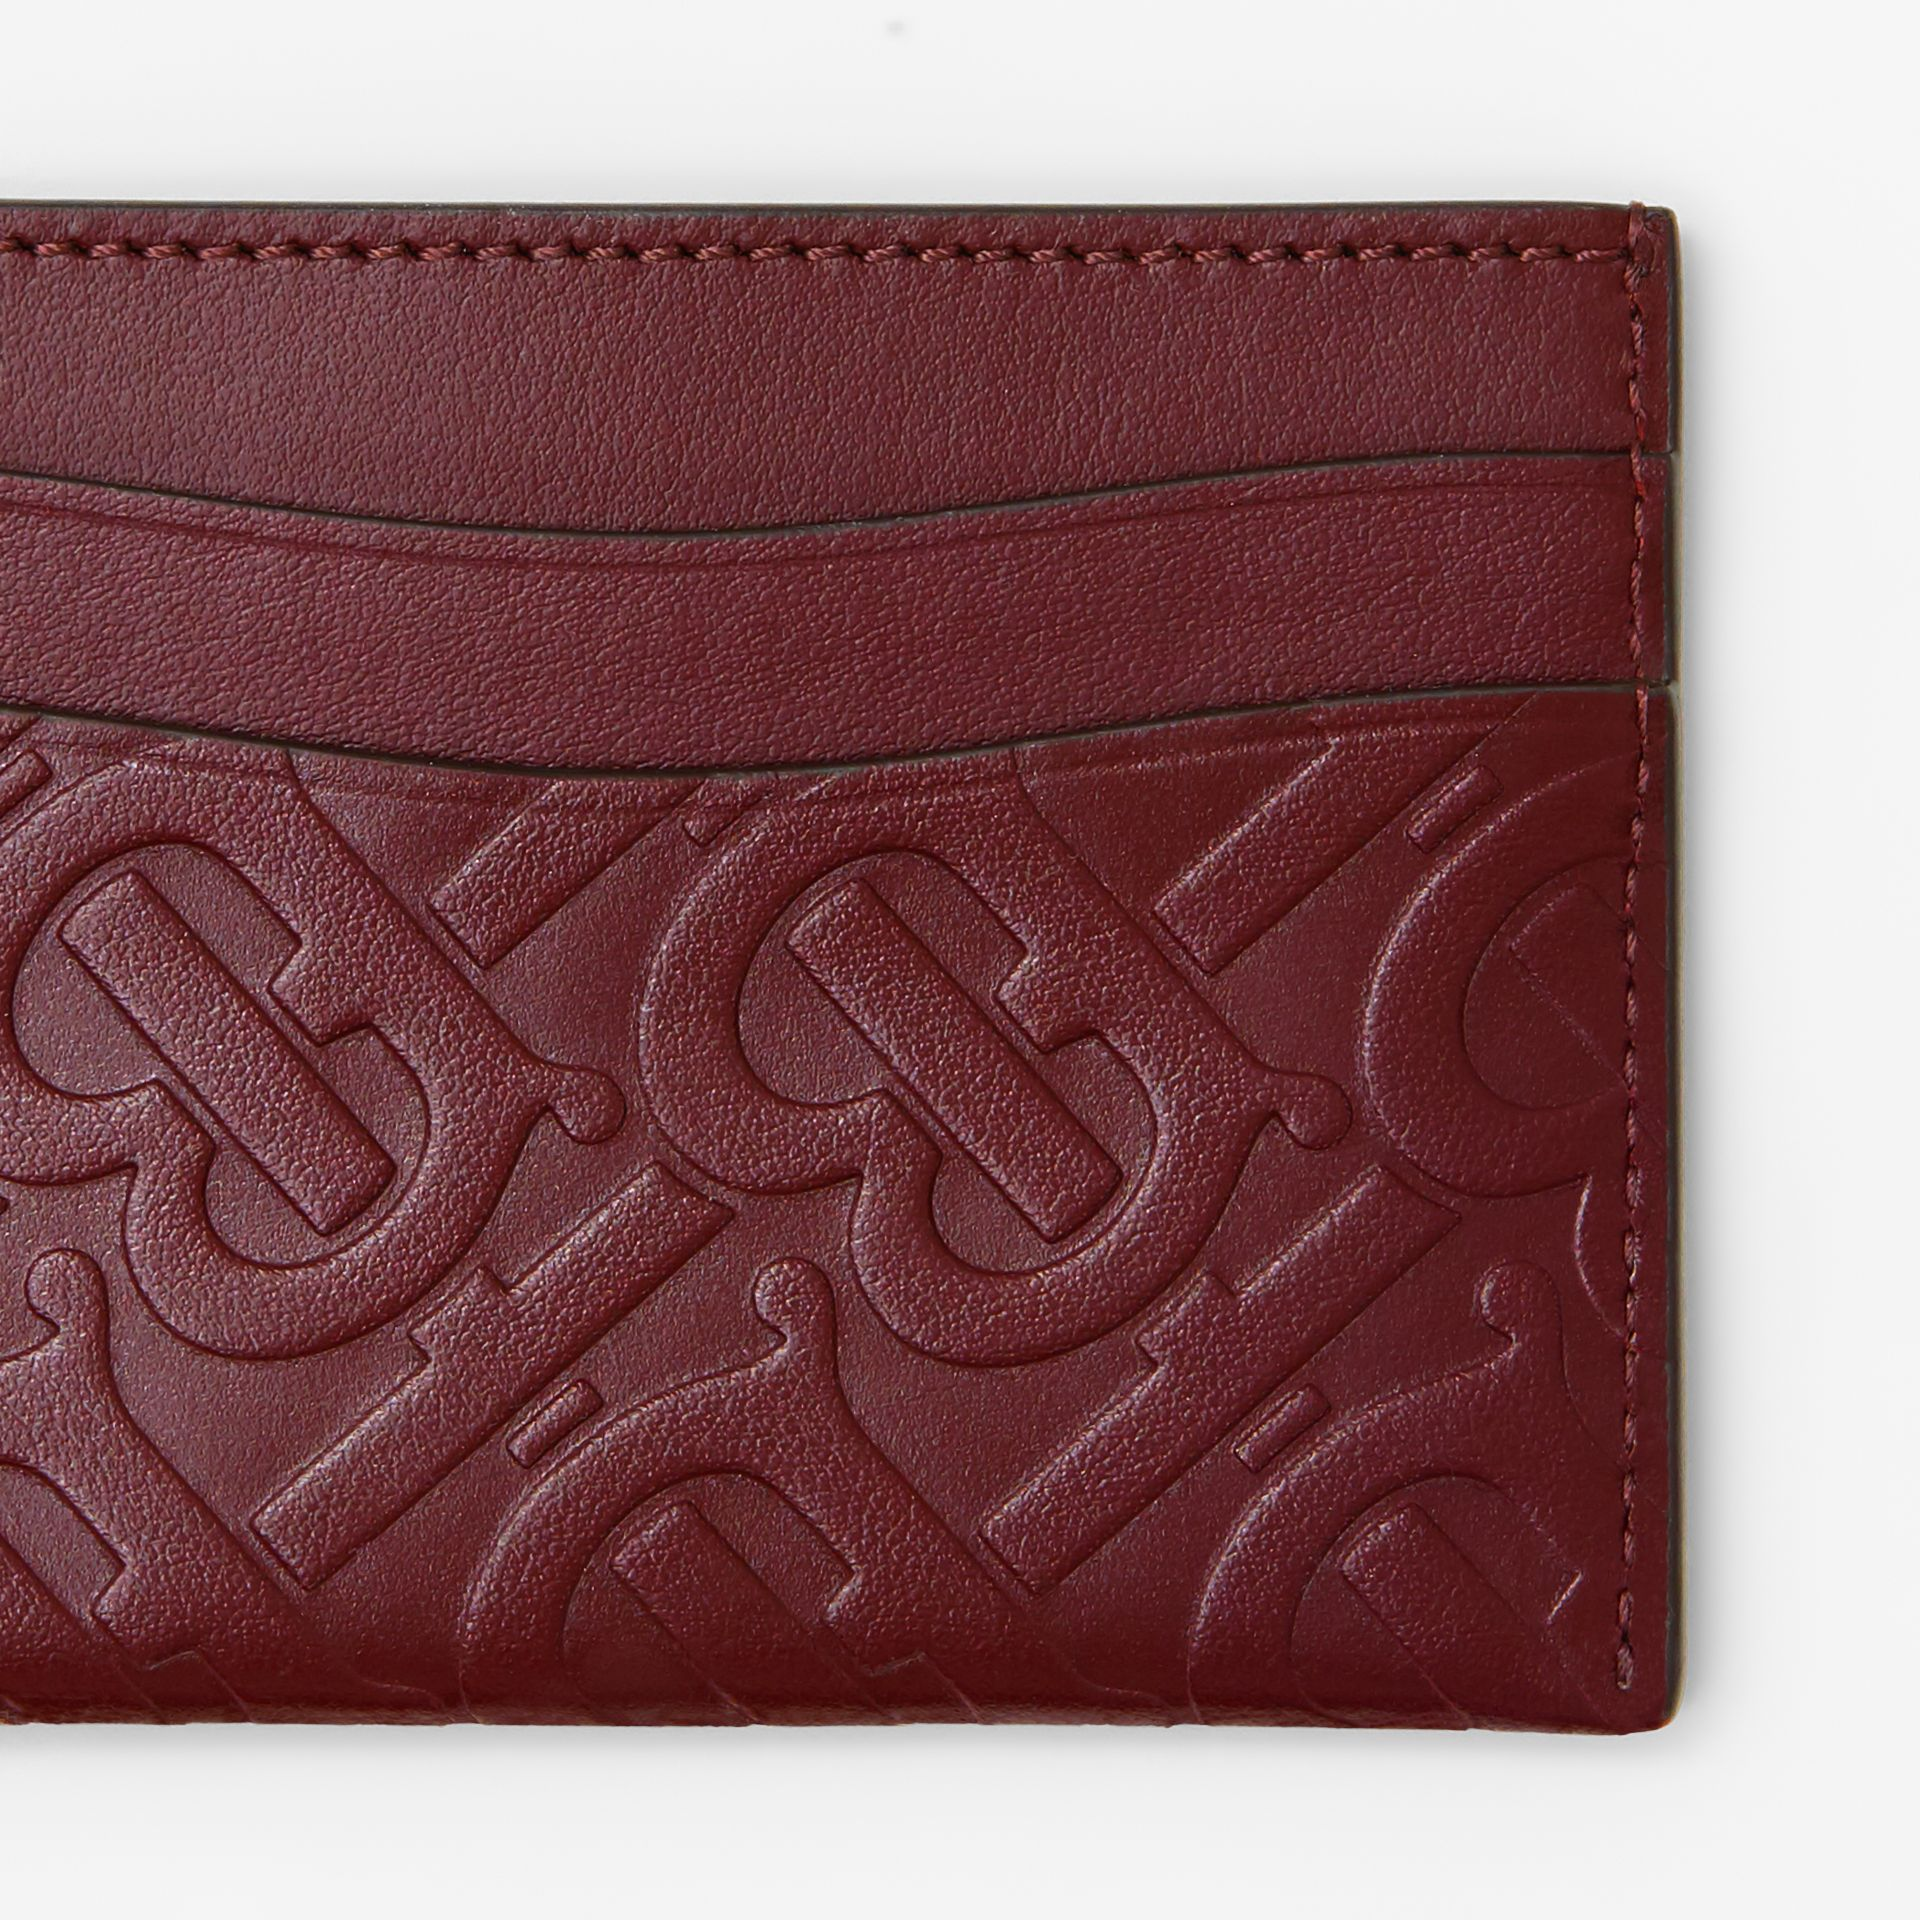 Monogram Leather Card Case in Oxblood - Women | Burberry Australia - gallery image 1